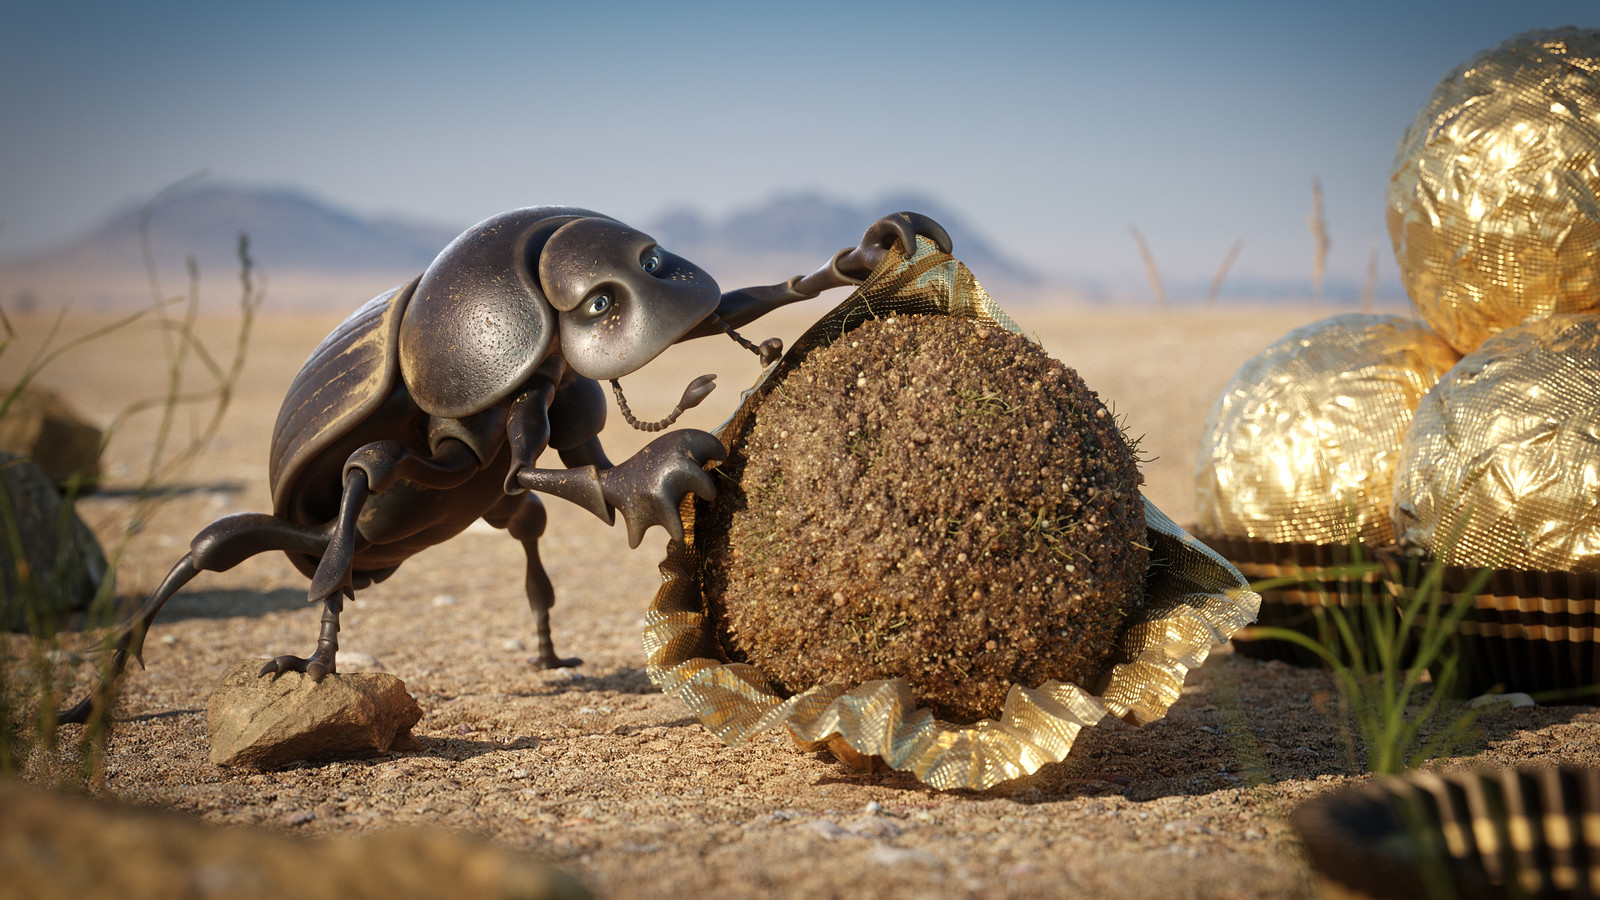 Adwin - The African Dung Beetle and his Obsession